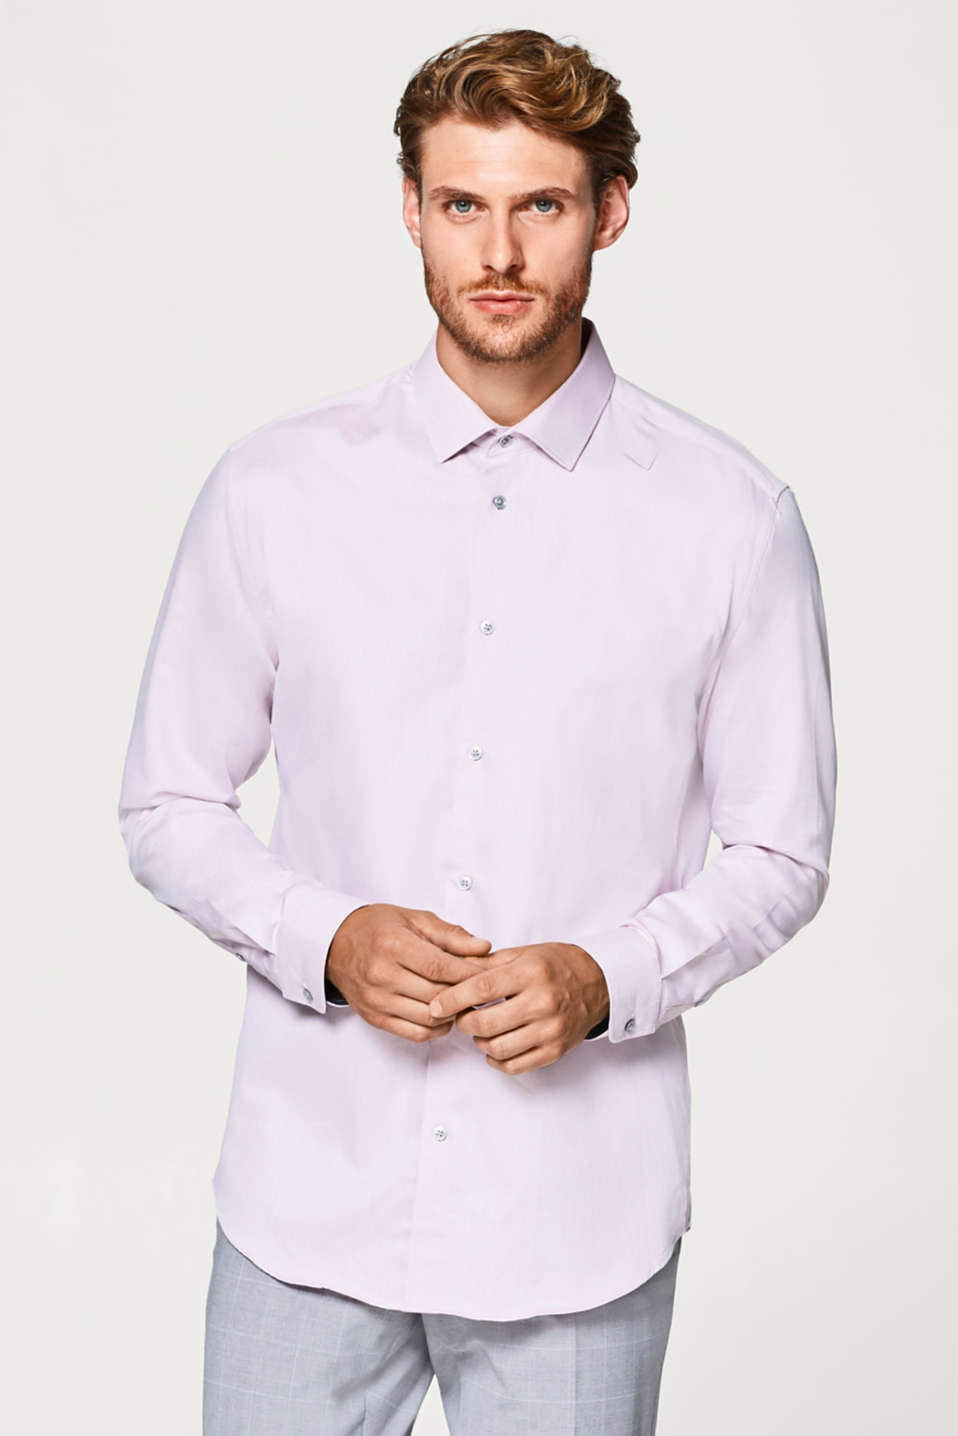 Esprit - Finely textured shirt, 100% cotton